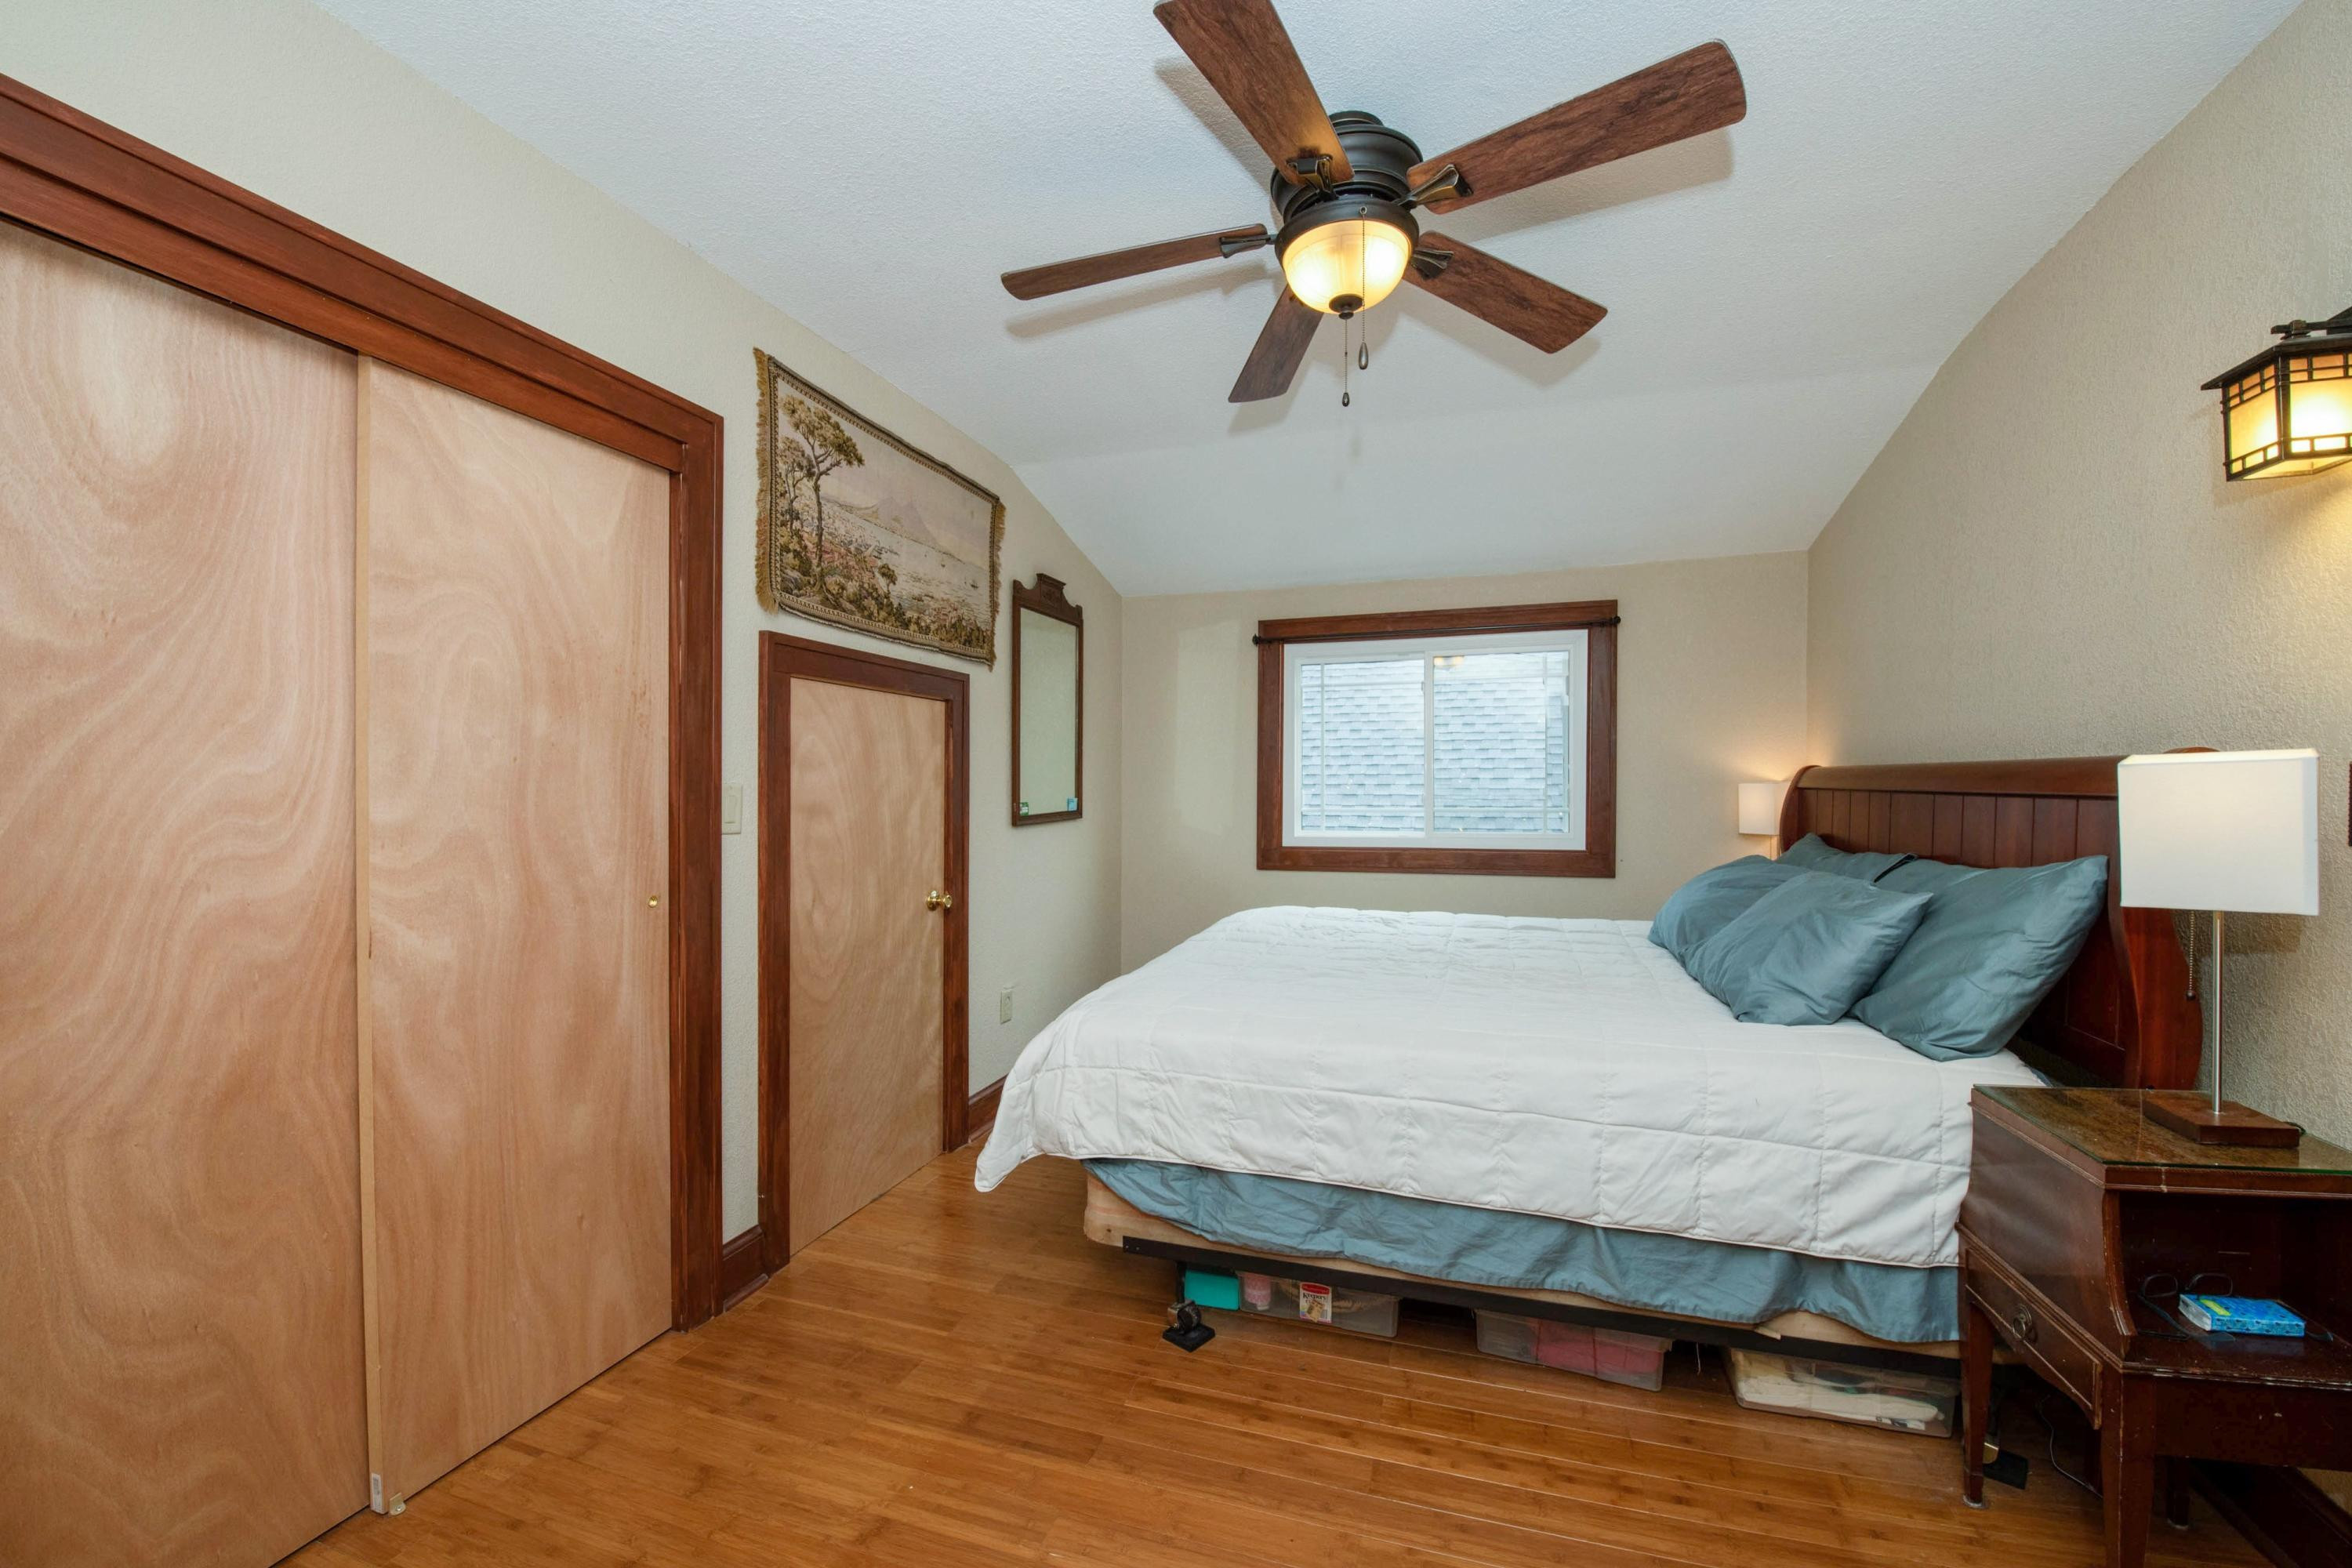 hardwood floor refinishing waukesha wi of 3027 s nevada st milwaukee wi mls 1606915 kathleen hansen throughout 4 13